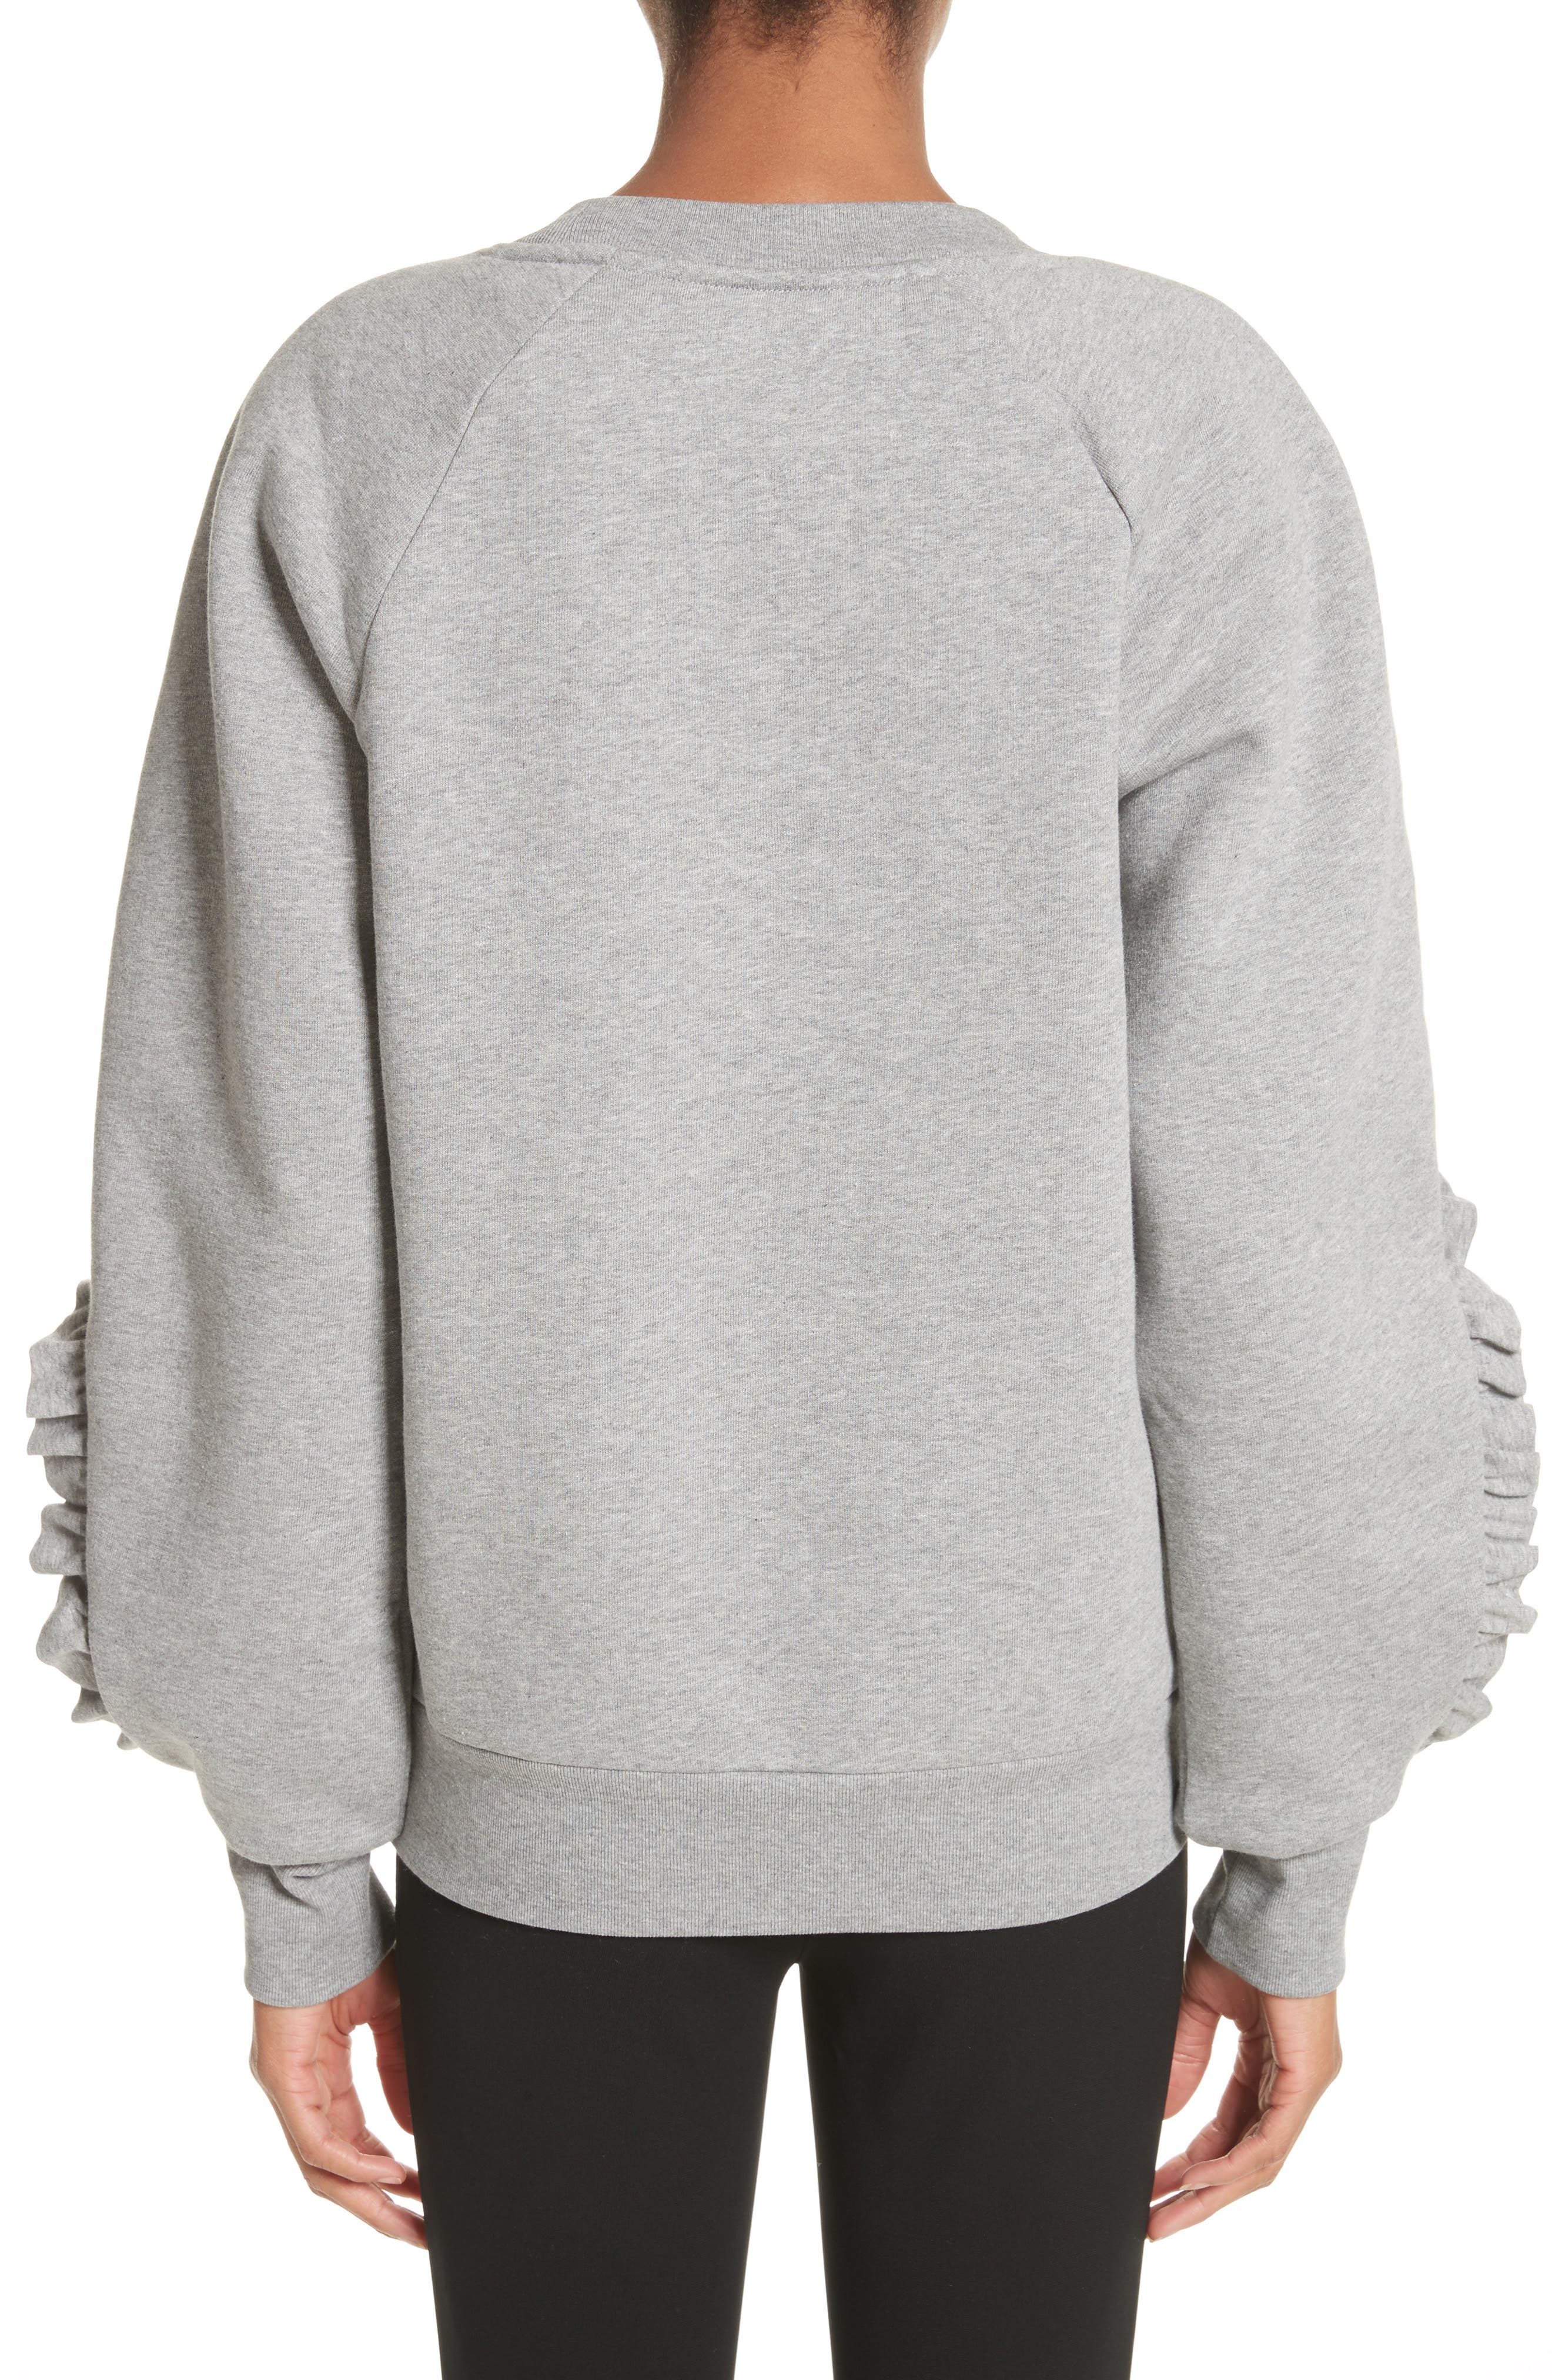 Kupa Ruffle Sleeve Sweatshirt,                             Alternate thumbnail 3, color,